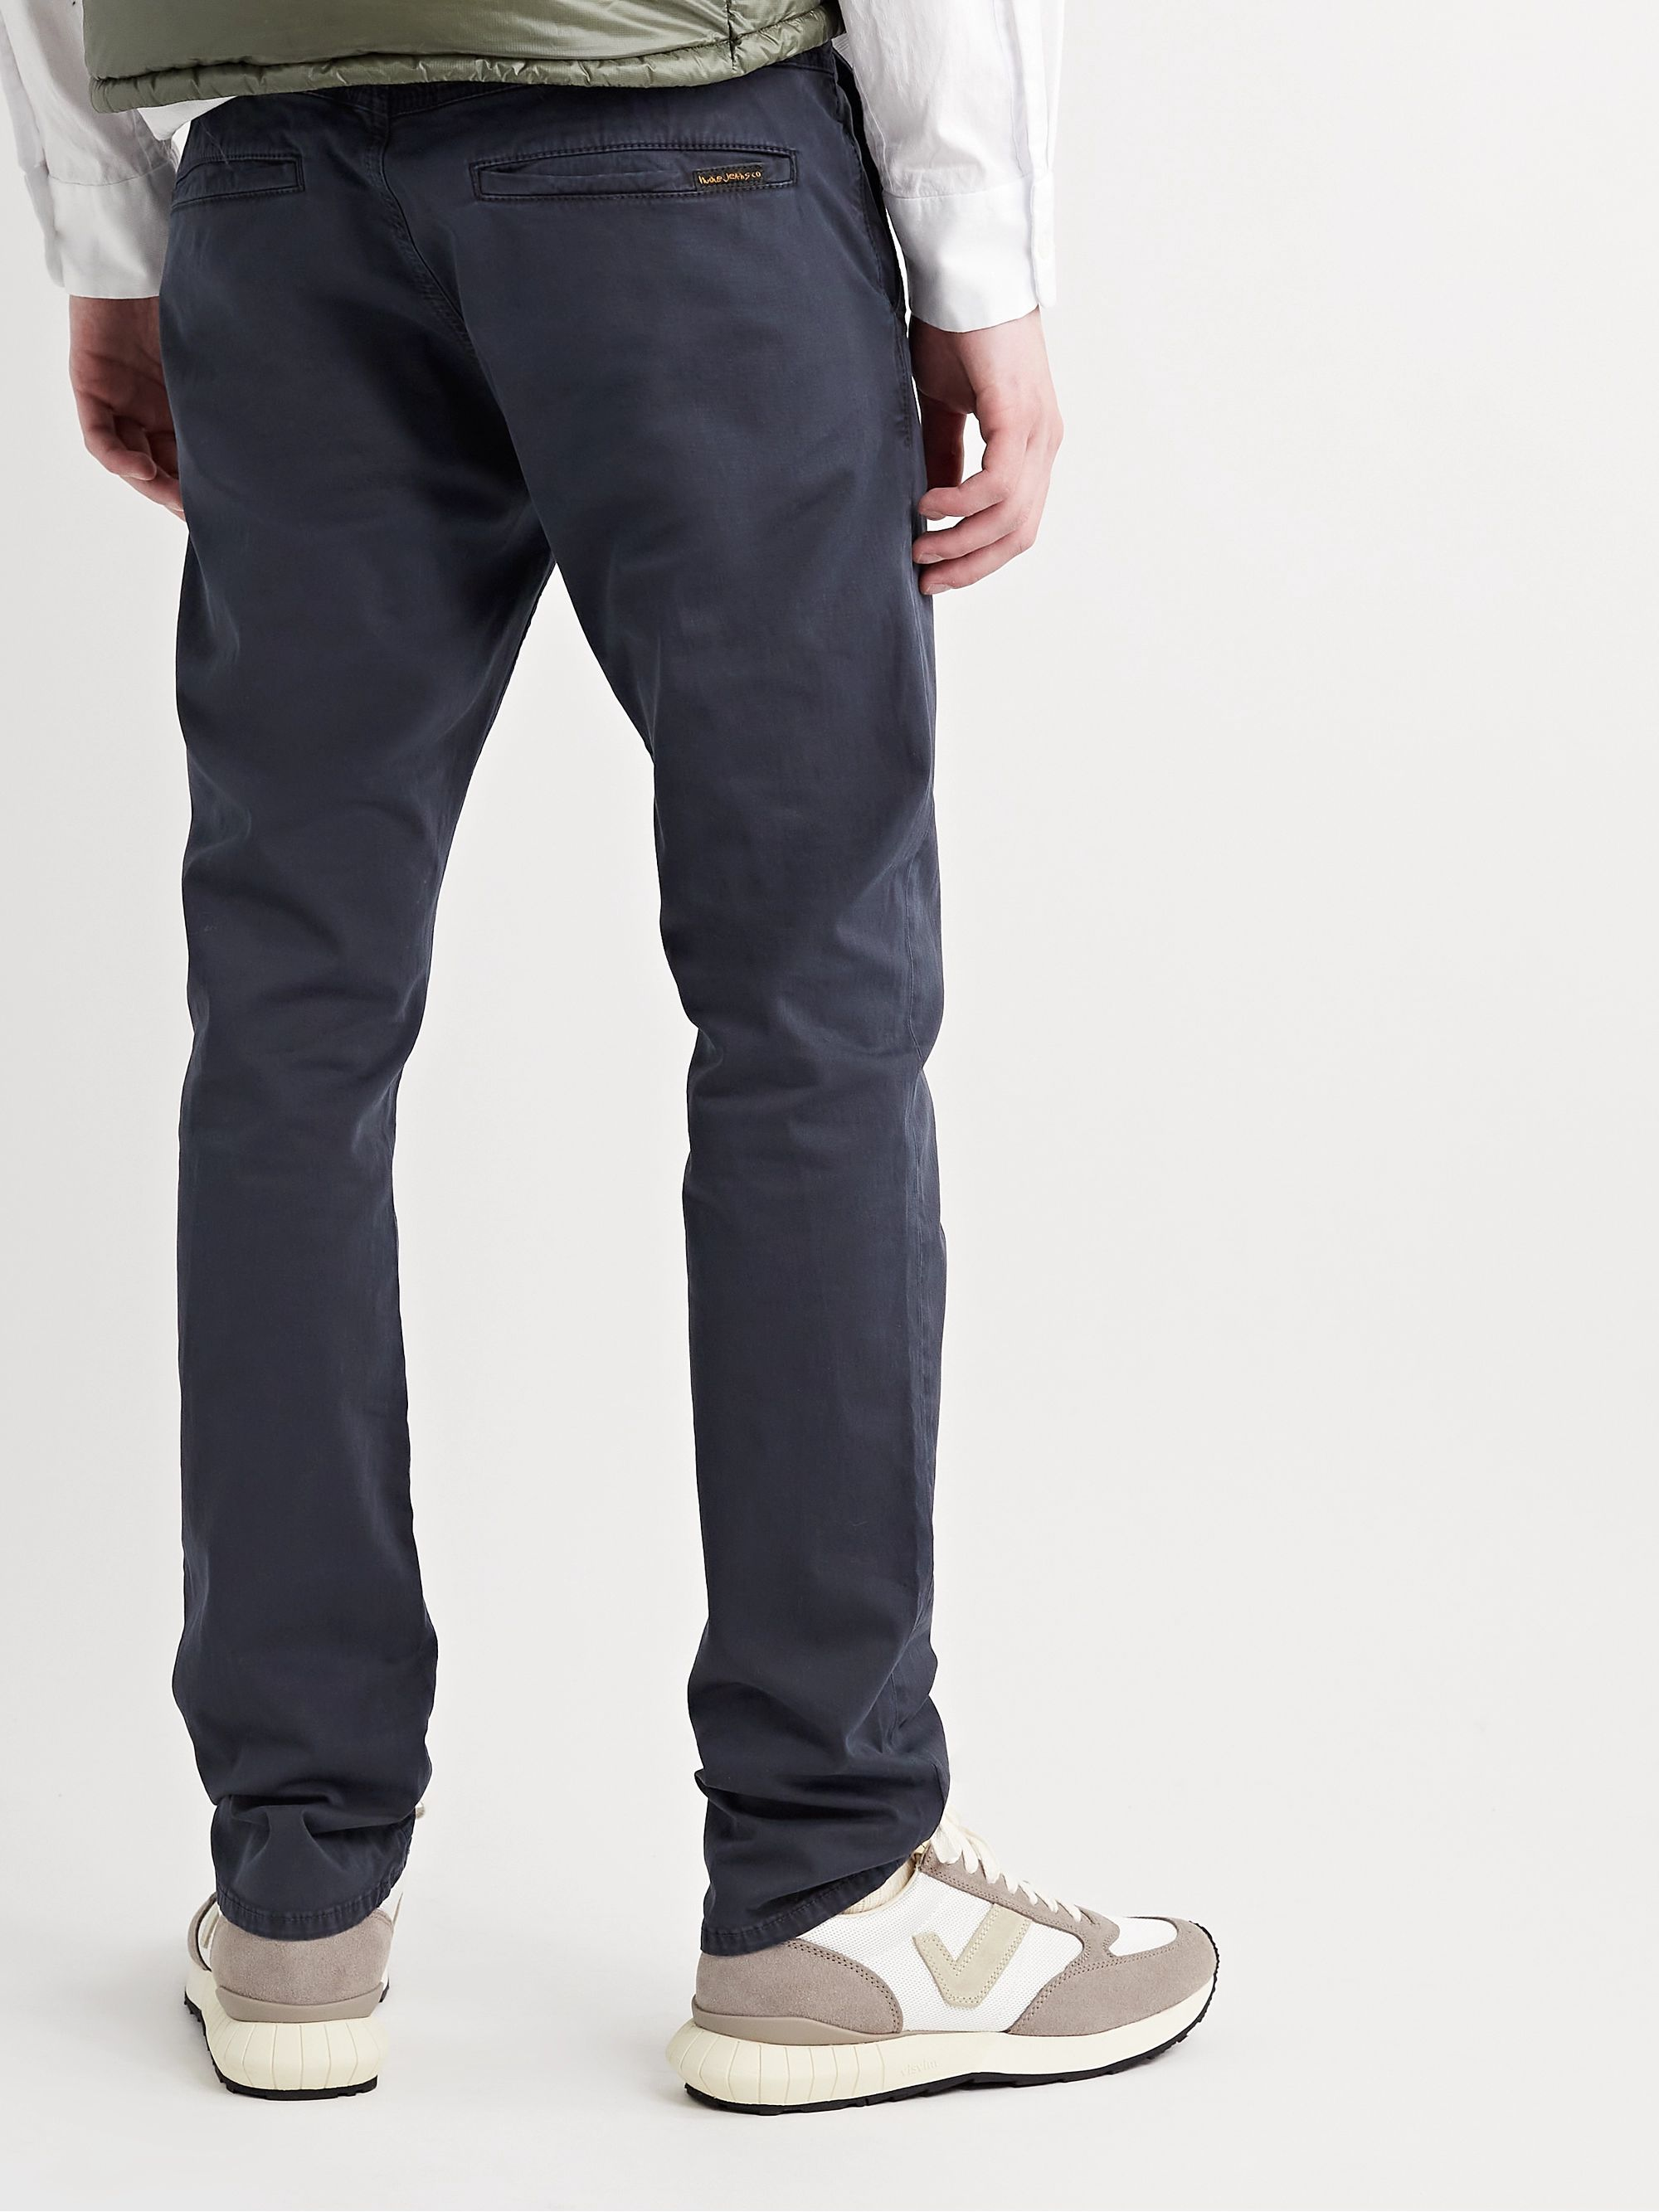 Nudie Jeans Slim Adam Garment-Dyed Stretch Organic Cotton-Twill Trousers